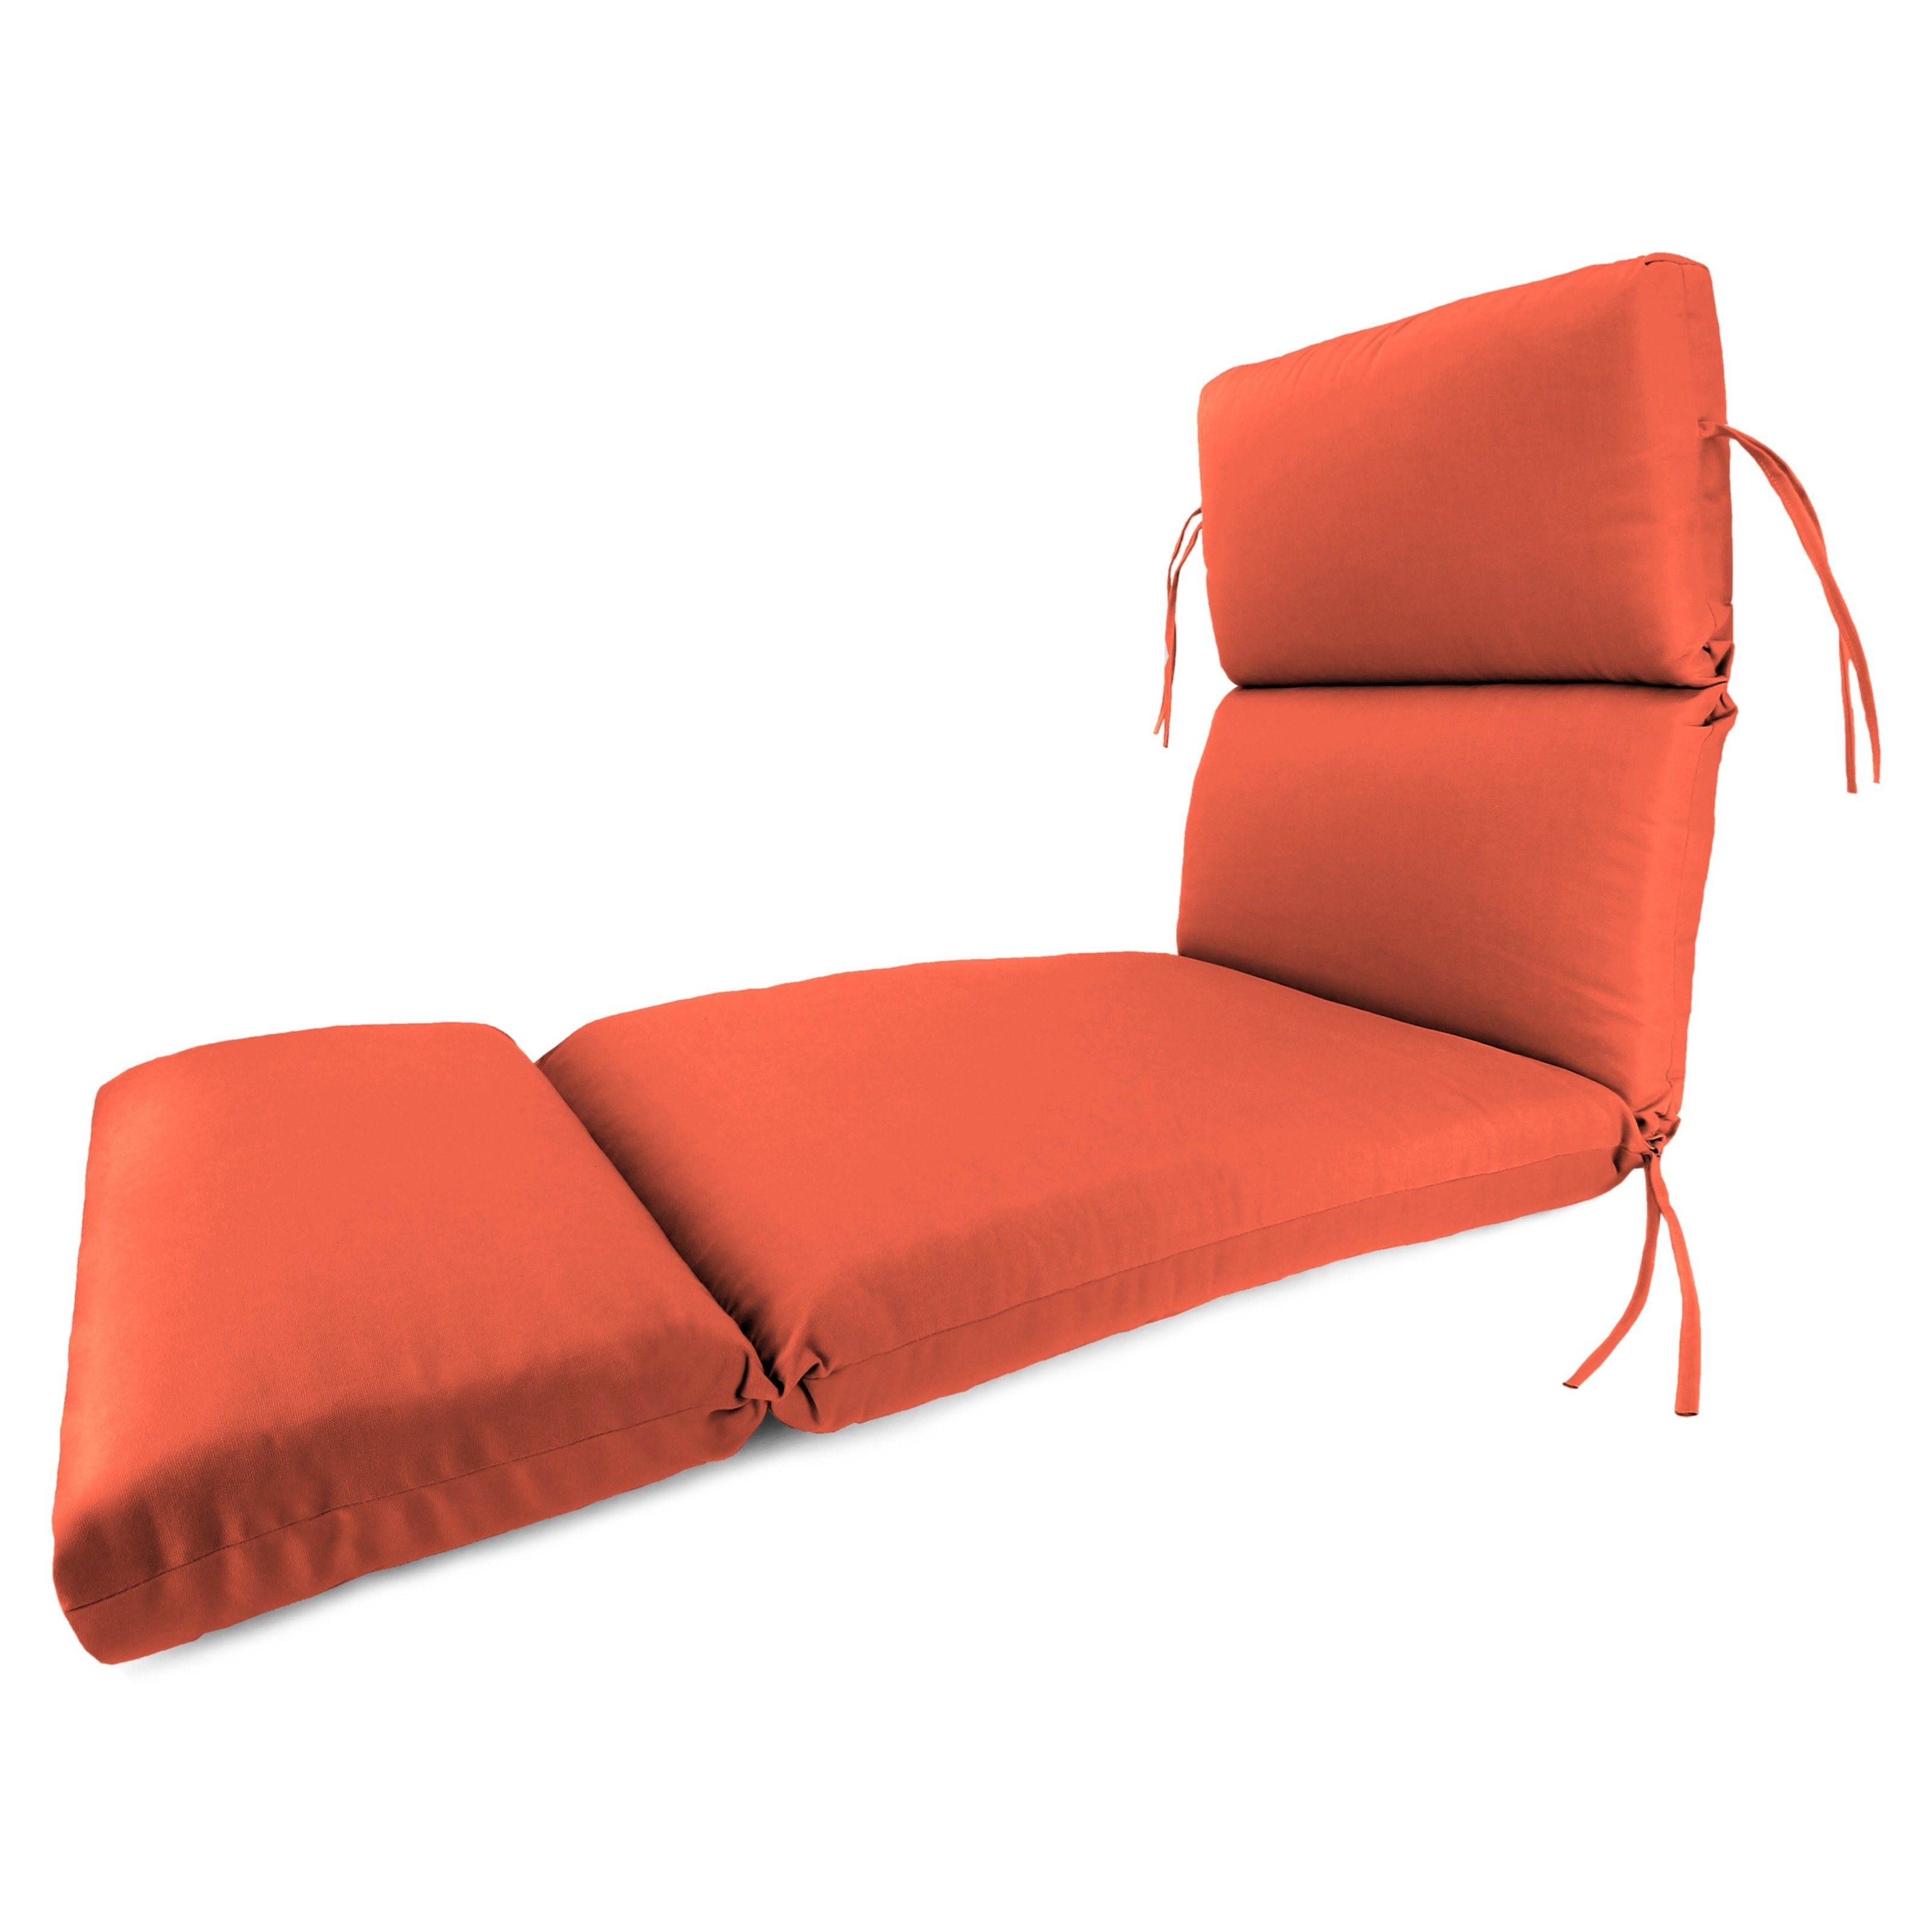 Orange Chaise Lounge Cushions Decoration (View 11 of 15)